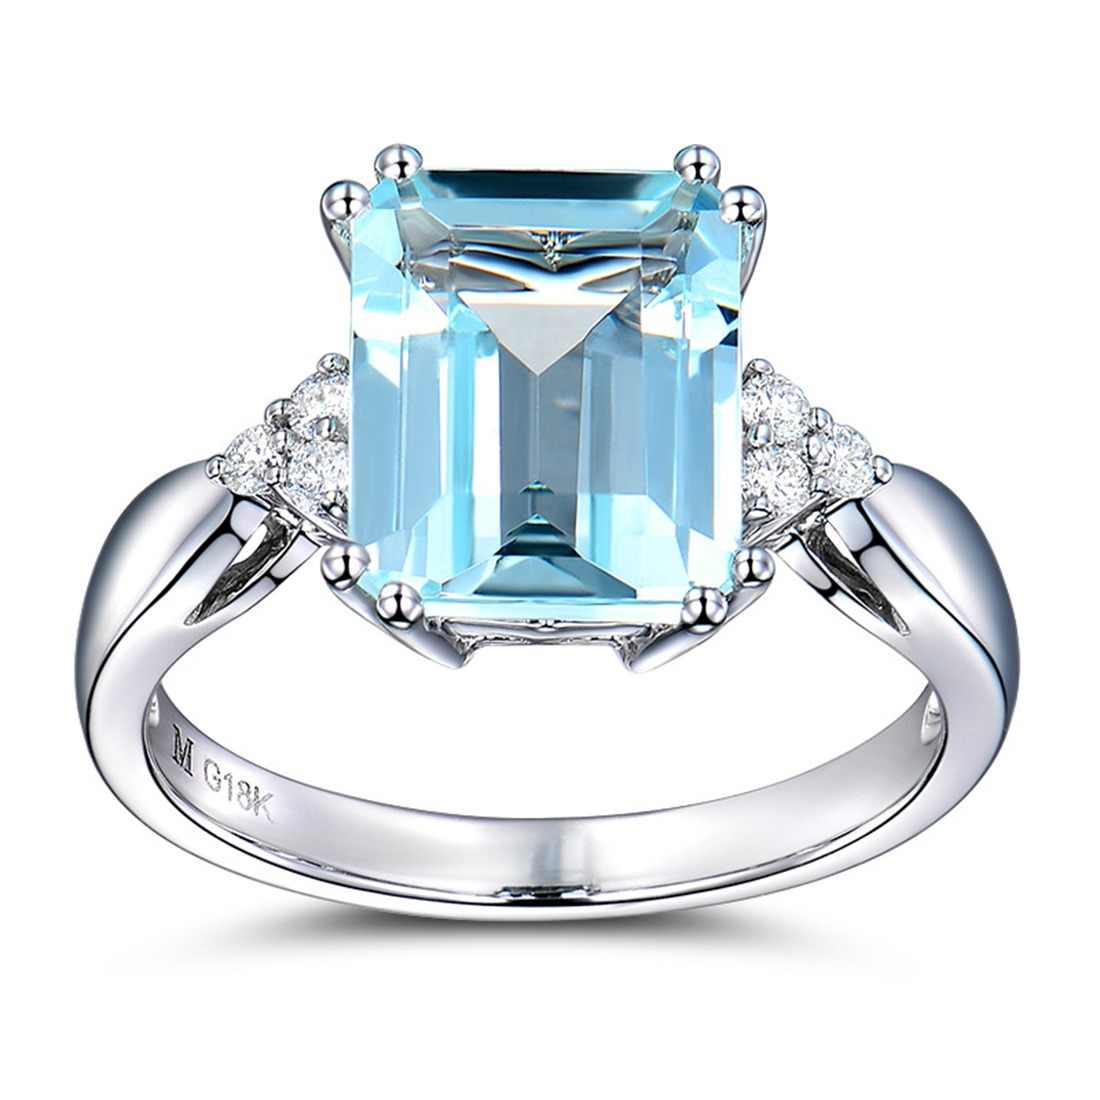 New Big Blue Rectangle Stone Silver Ring for Women Engagement Fashion Jewelry 2018